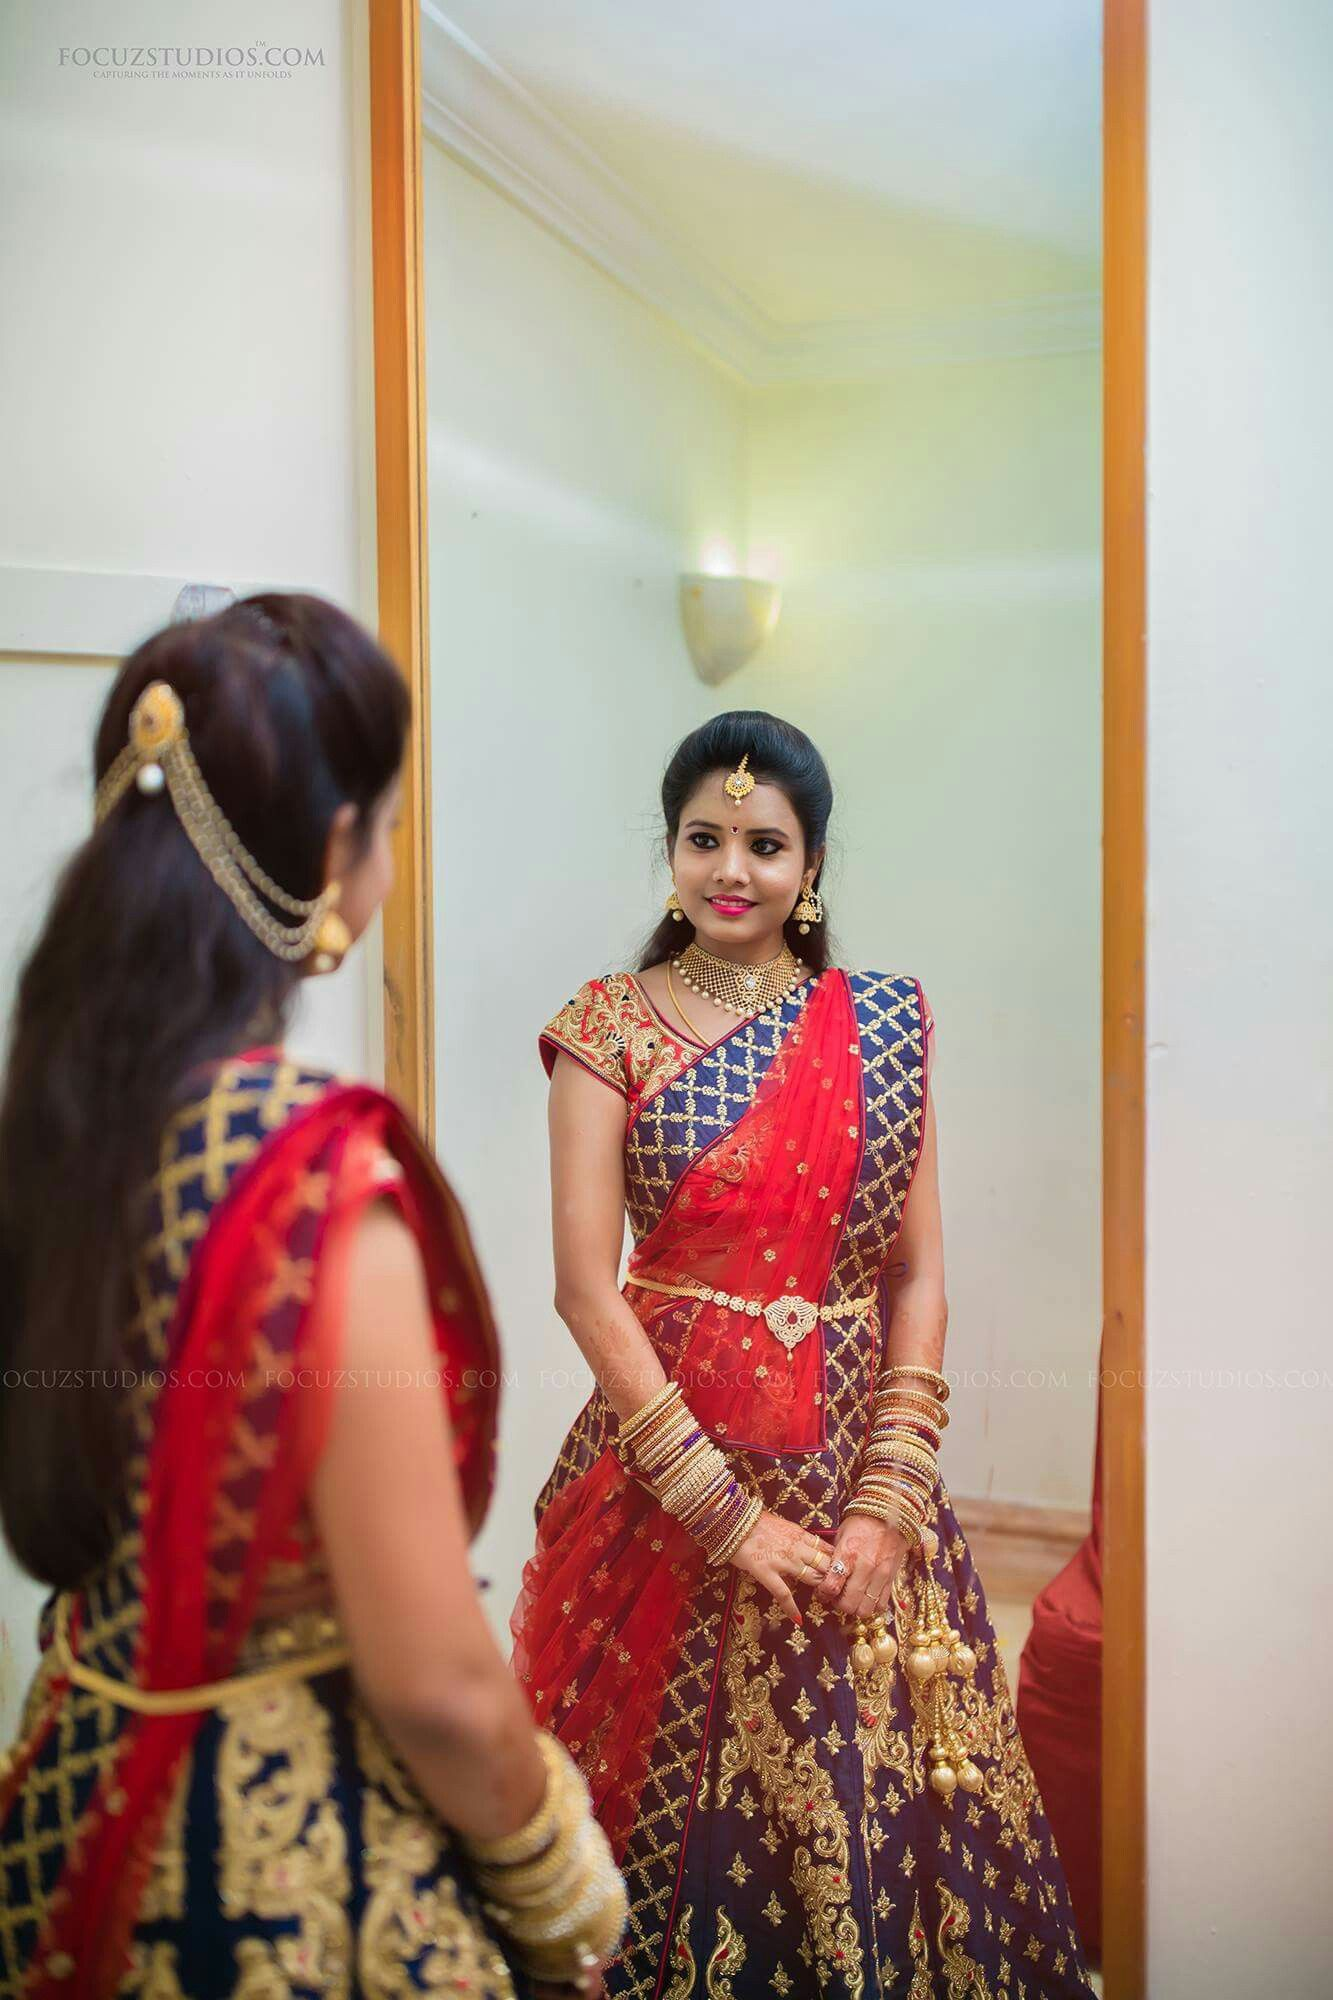 Hair Style South Indian Wedding Hairstyles Wedding Blouse Designs Bridal Hairstyle Indian Wedding